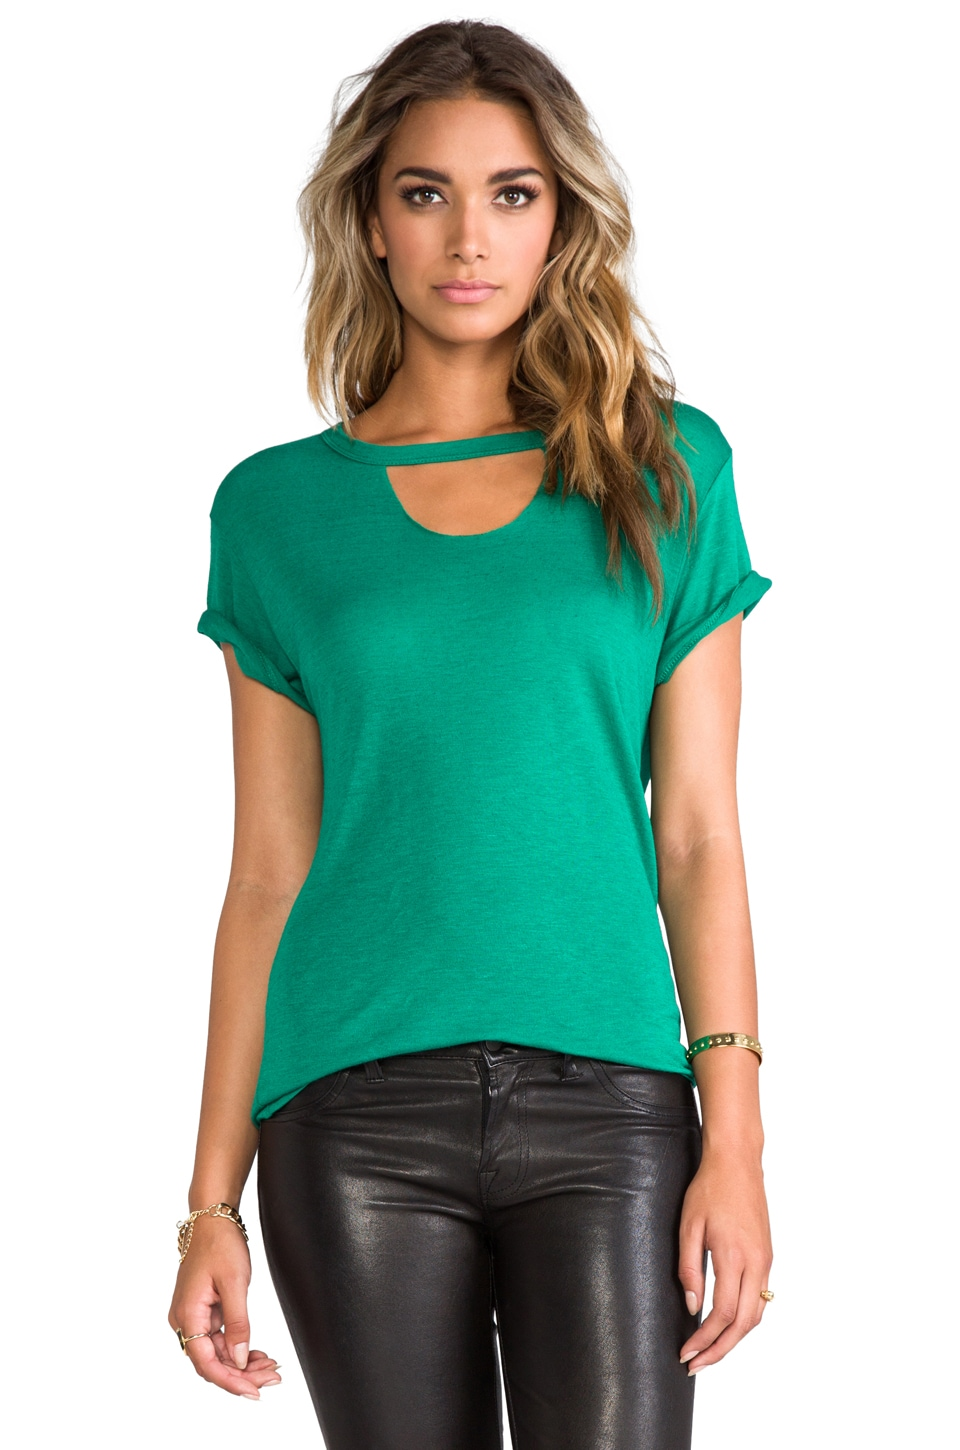 LNA Mosshart Tee in Emerald